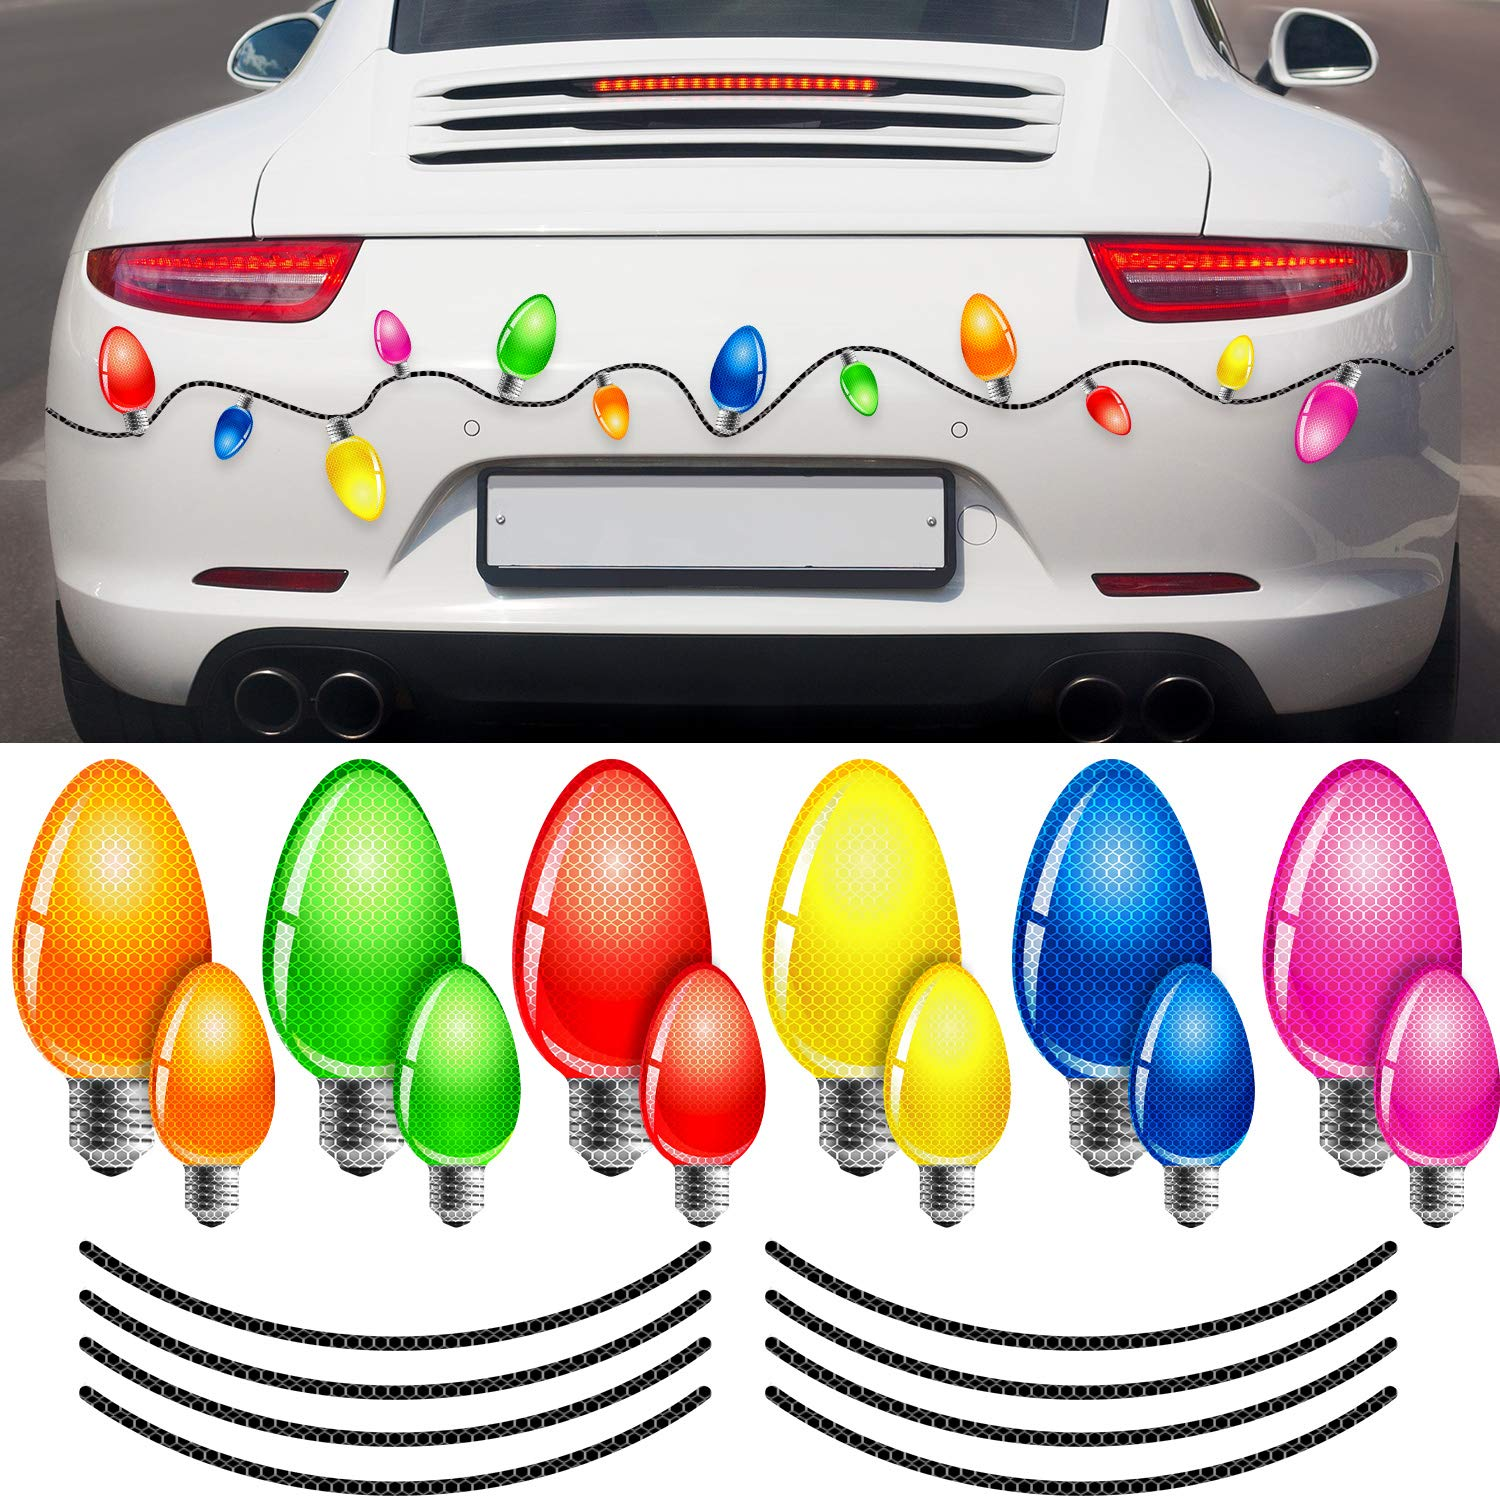 Blulu 20 Pieces Reflective Christmas Car Magnets Set, 12 Pieces Xmas Holiday Christmas Lights Bulb Magnet Set for Xmas Holiday Winter Party Car, Garage, Mailbox, Refrigerator Decal with 8 Magnet Wire